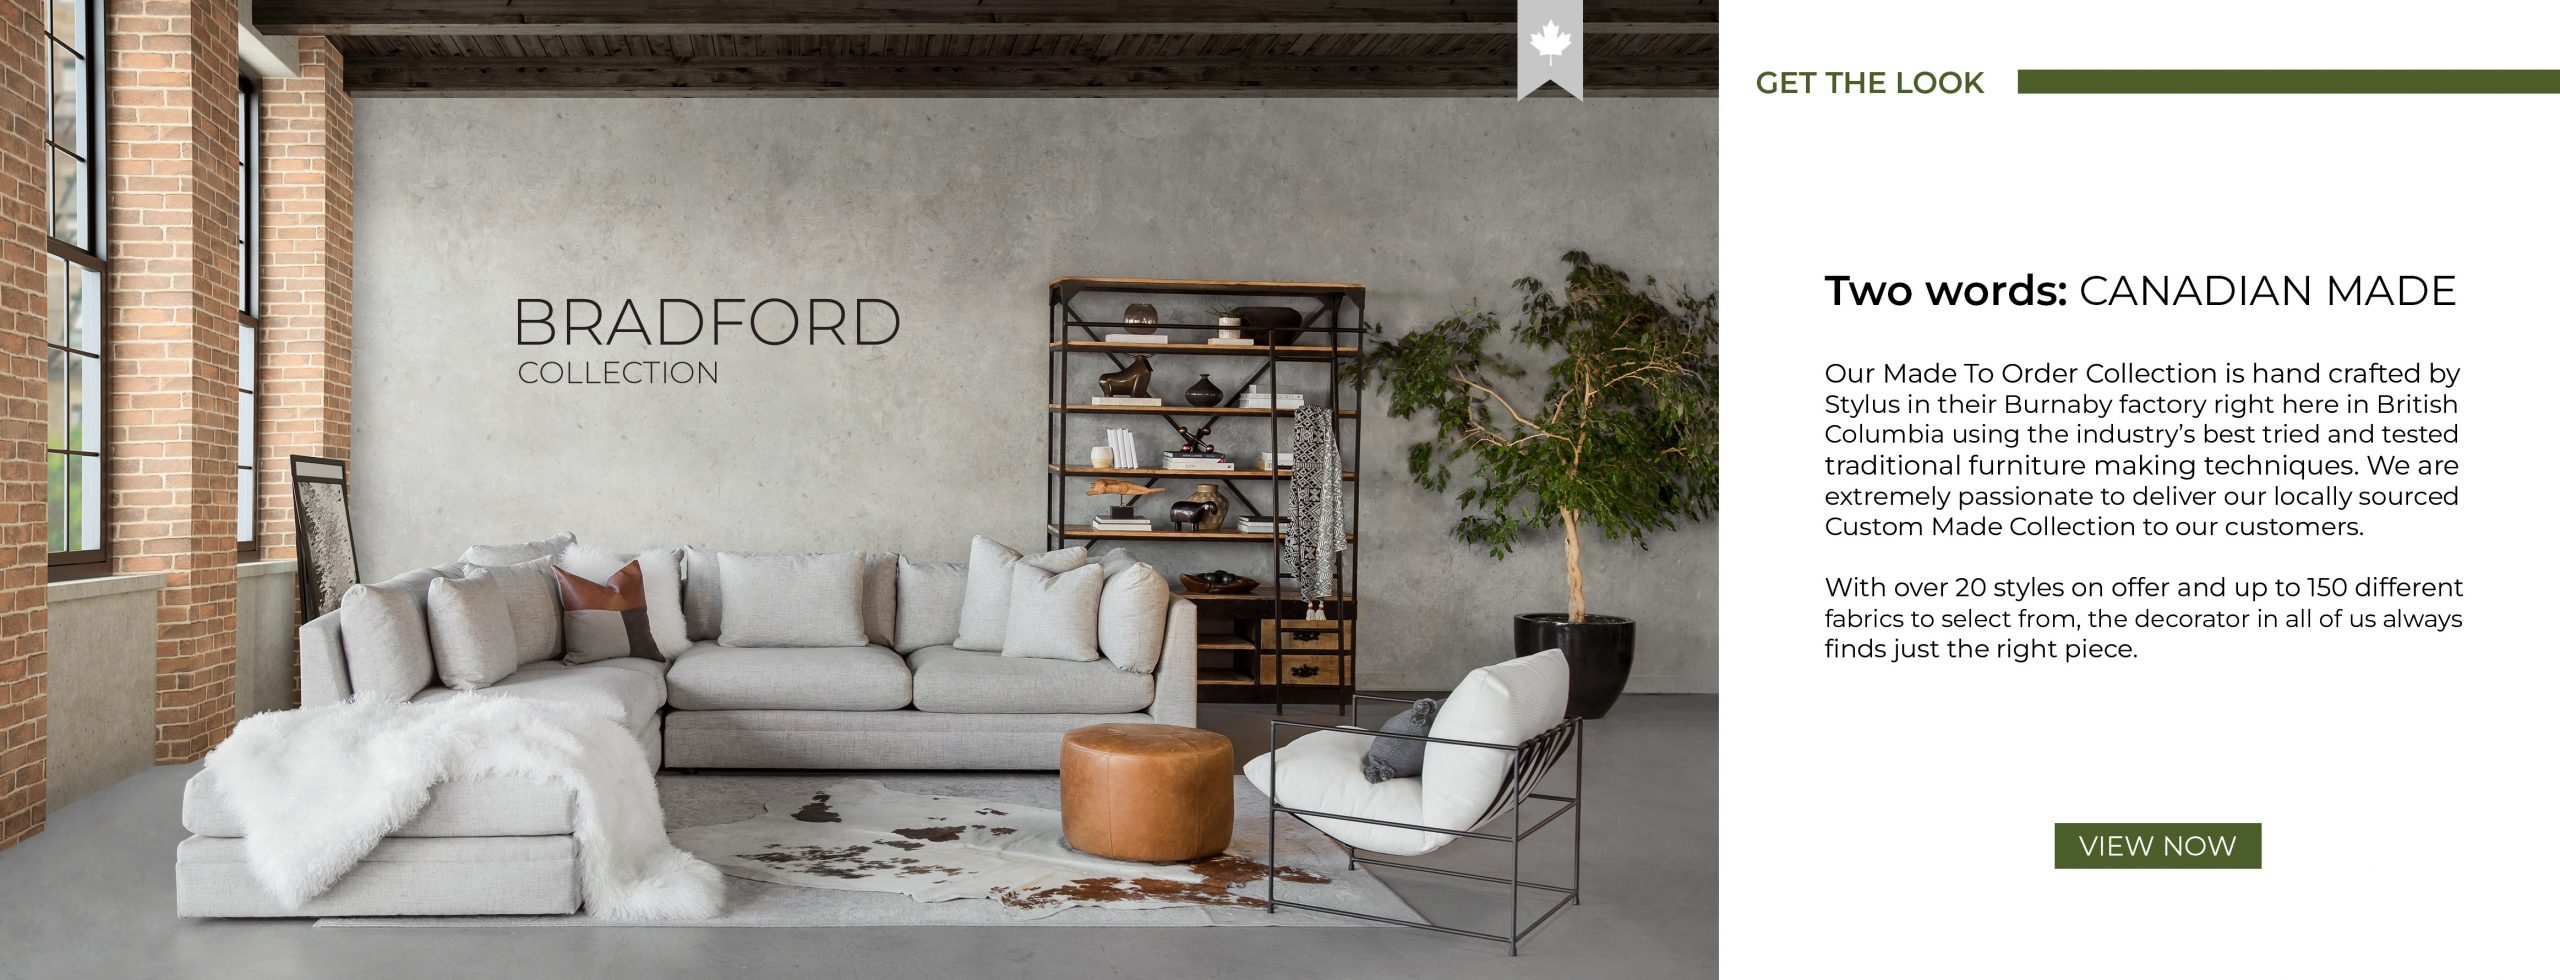 March Bradford Canadian made